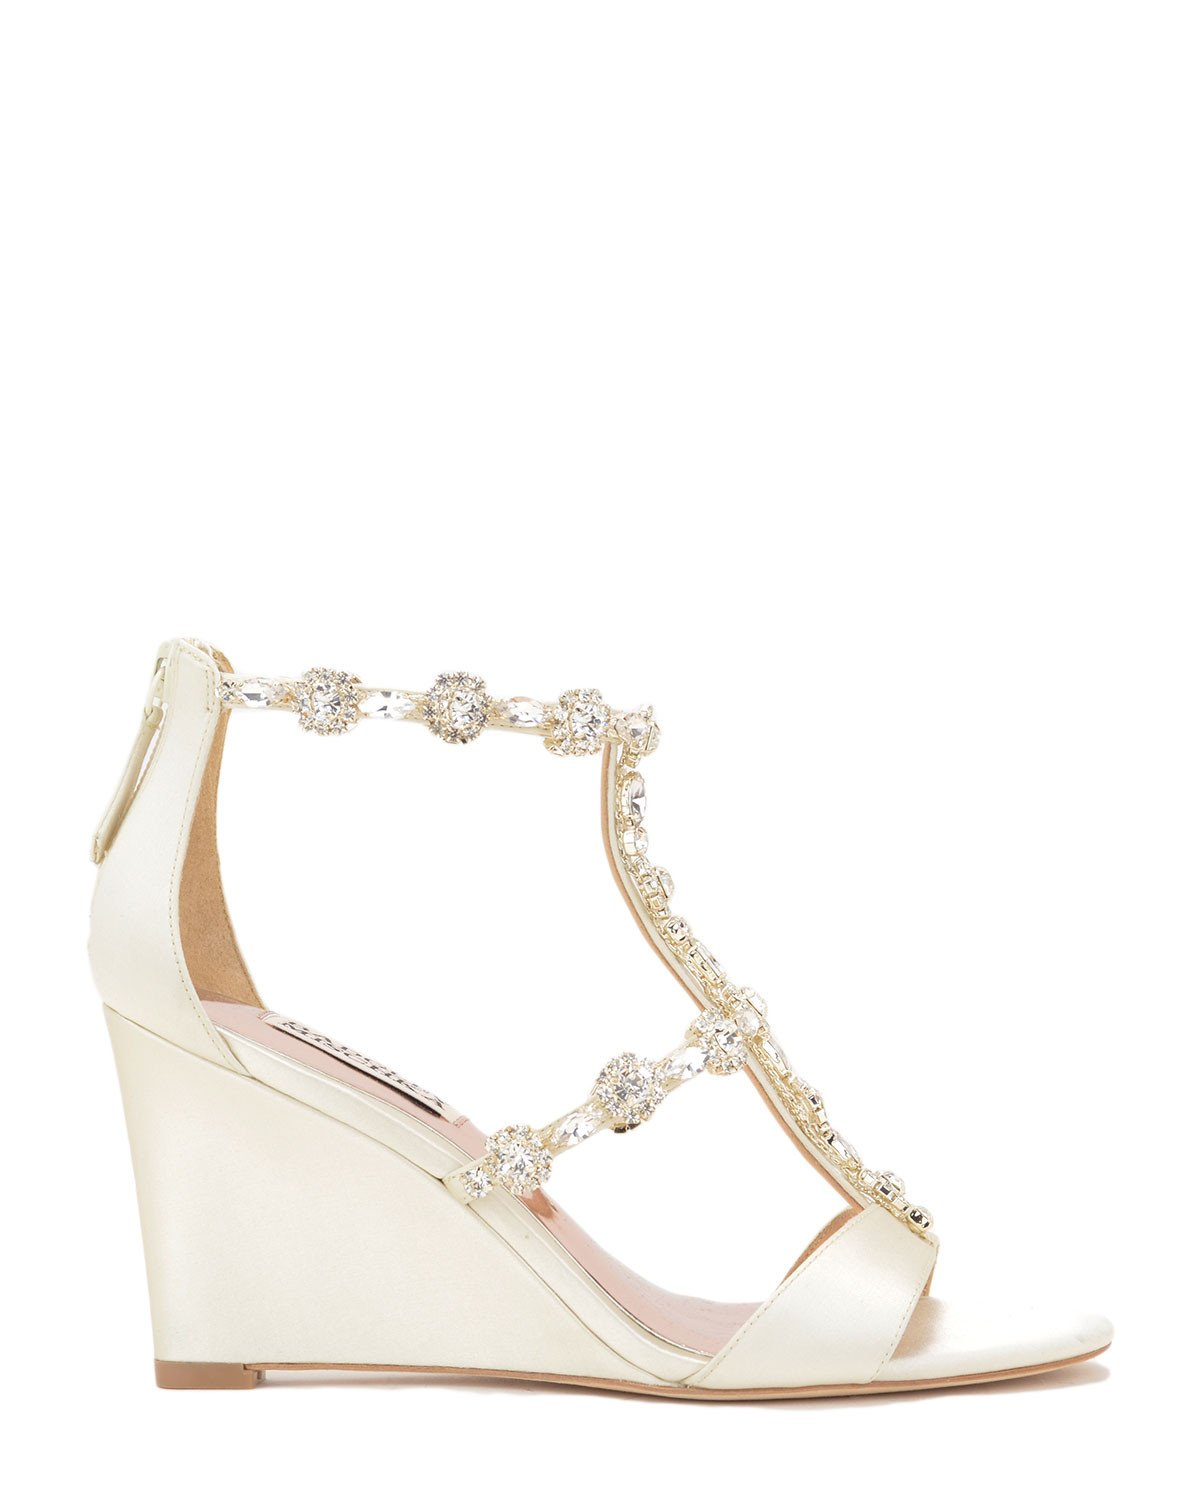 Badgley Mischka Designer Wedding Shoes -  Tabby - Ivory